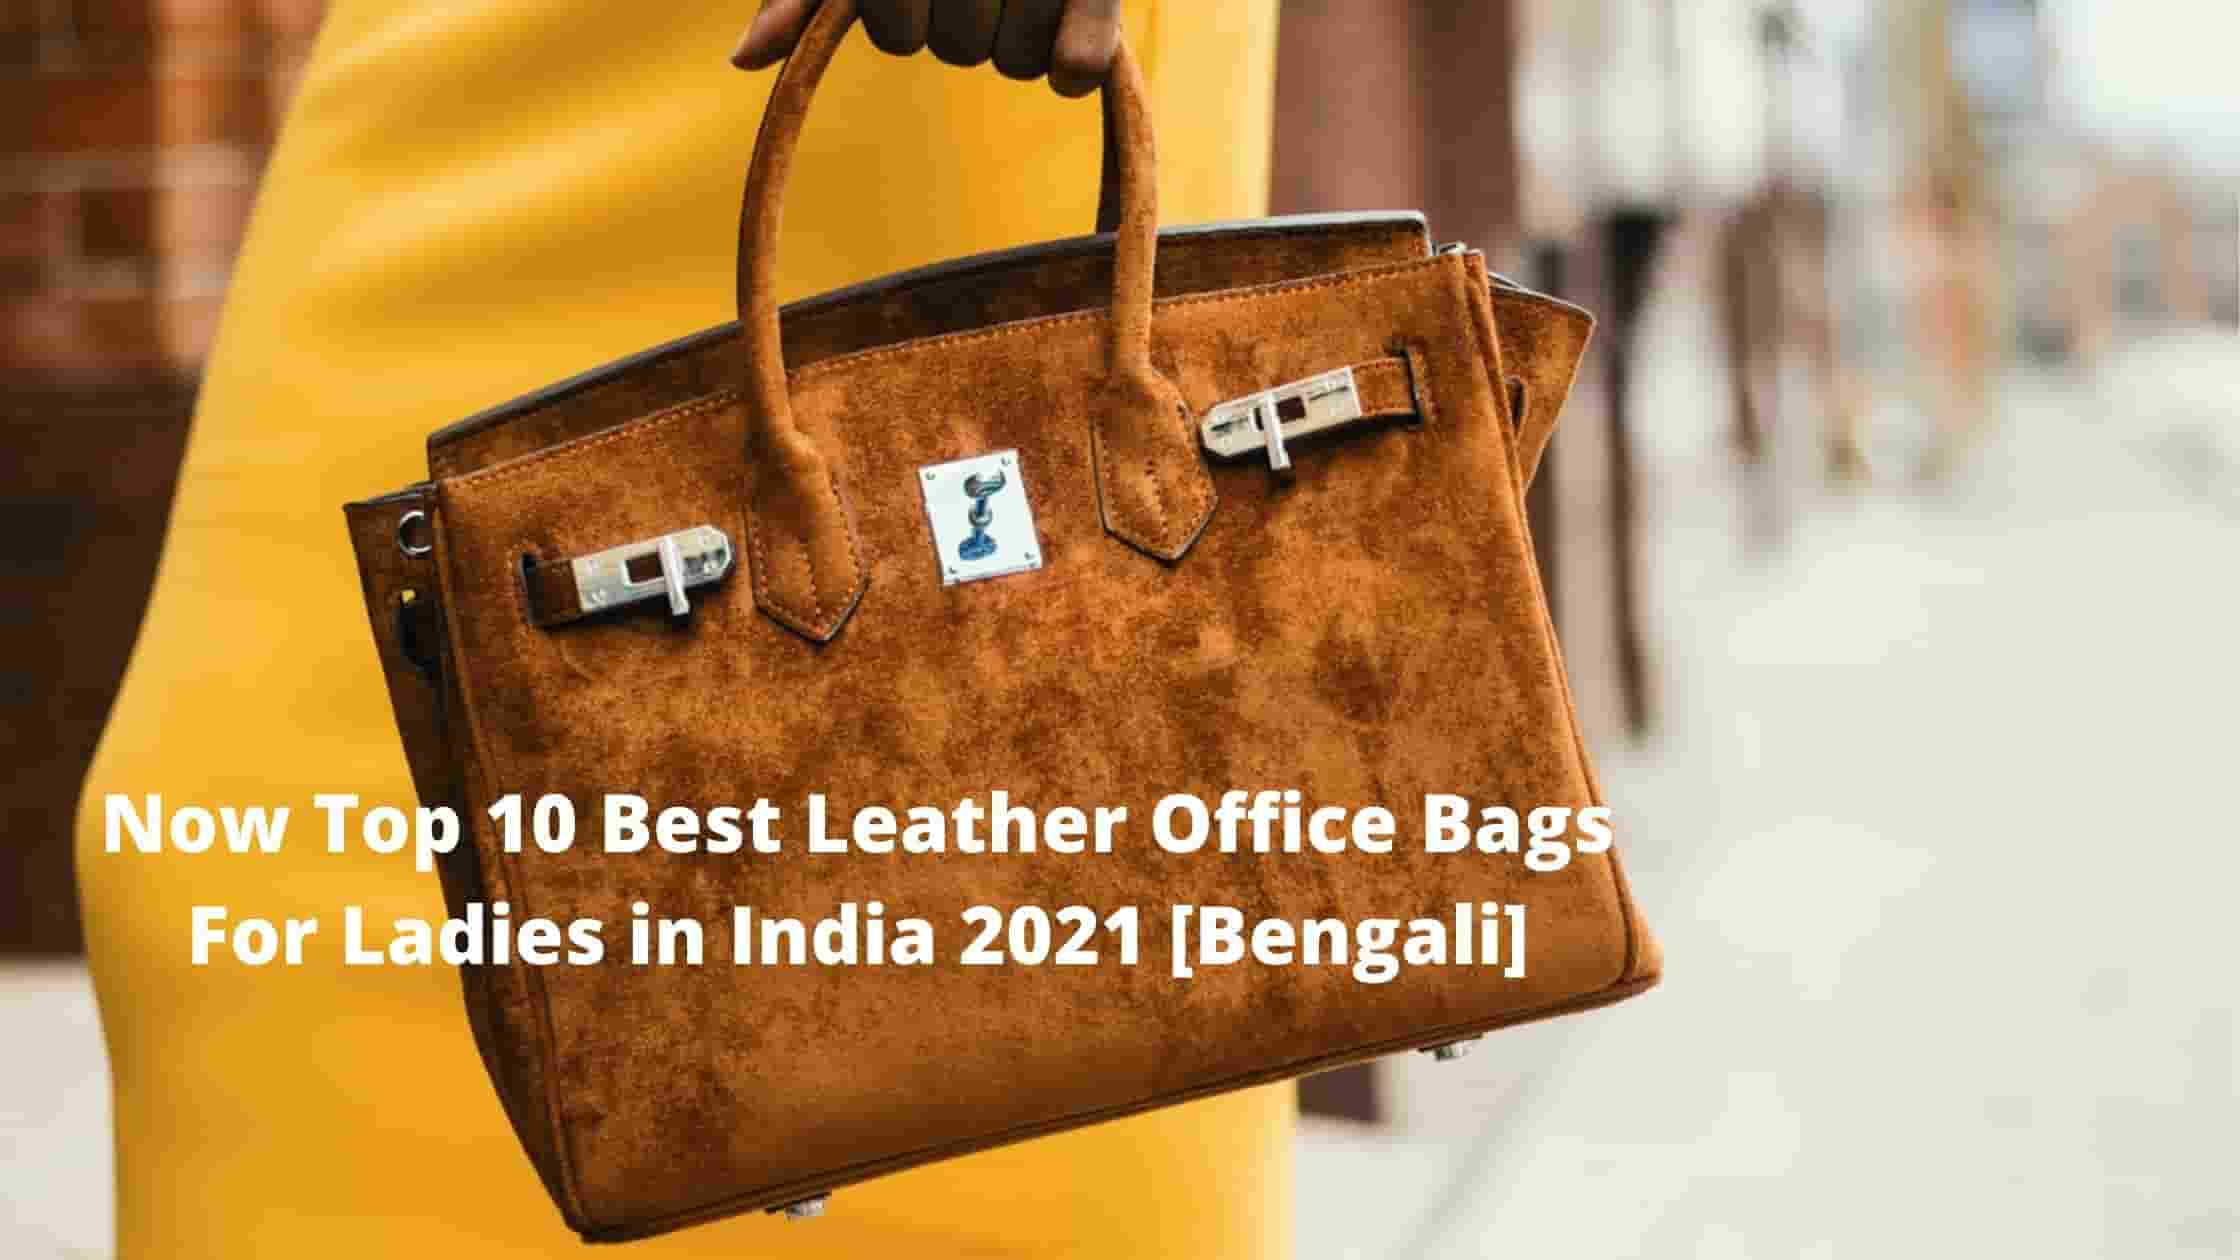 Now Top 10 Best Leather Office Bags For Ladies in India 2021 [Bengali]